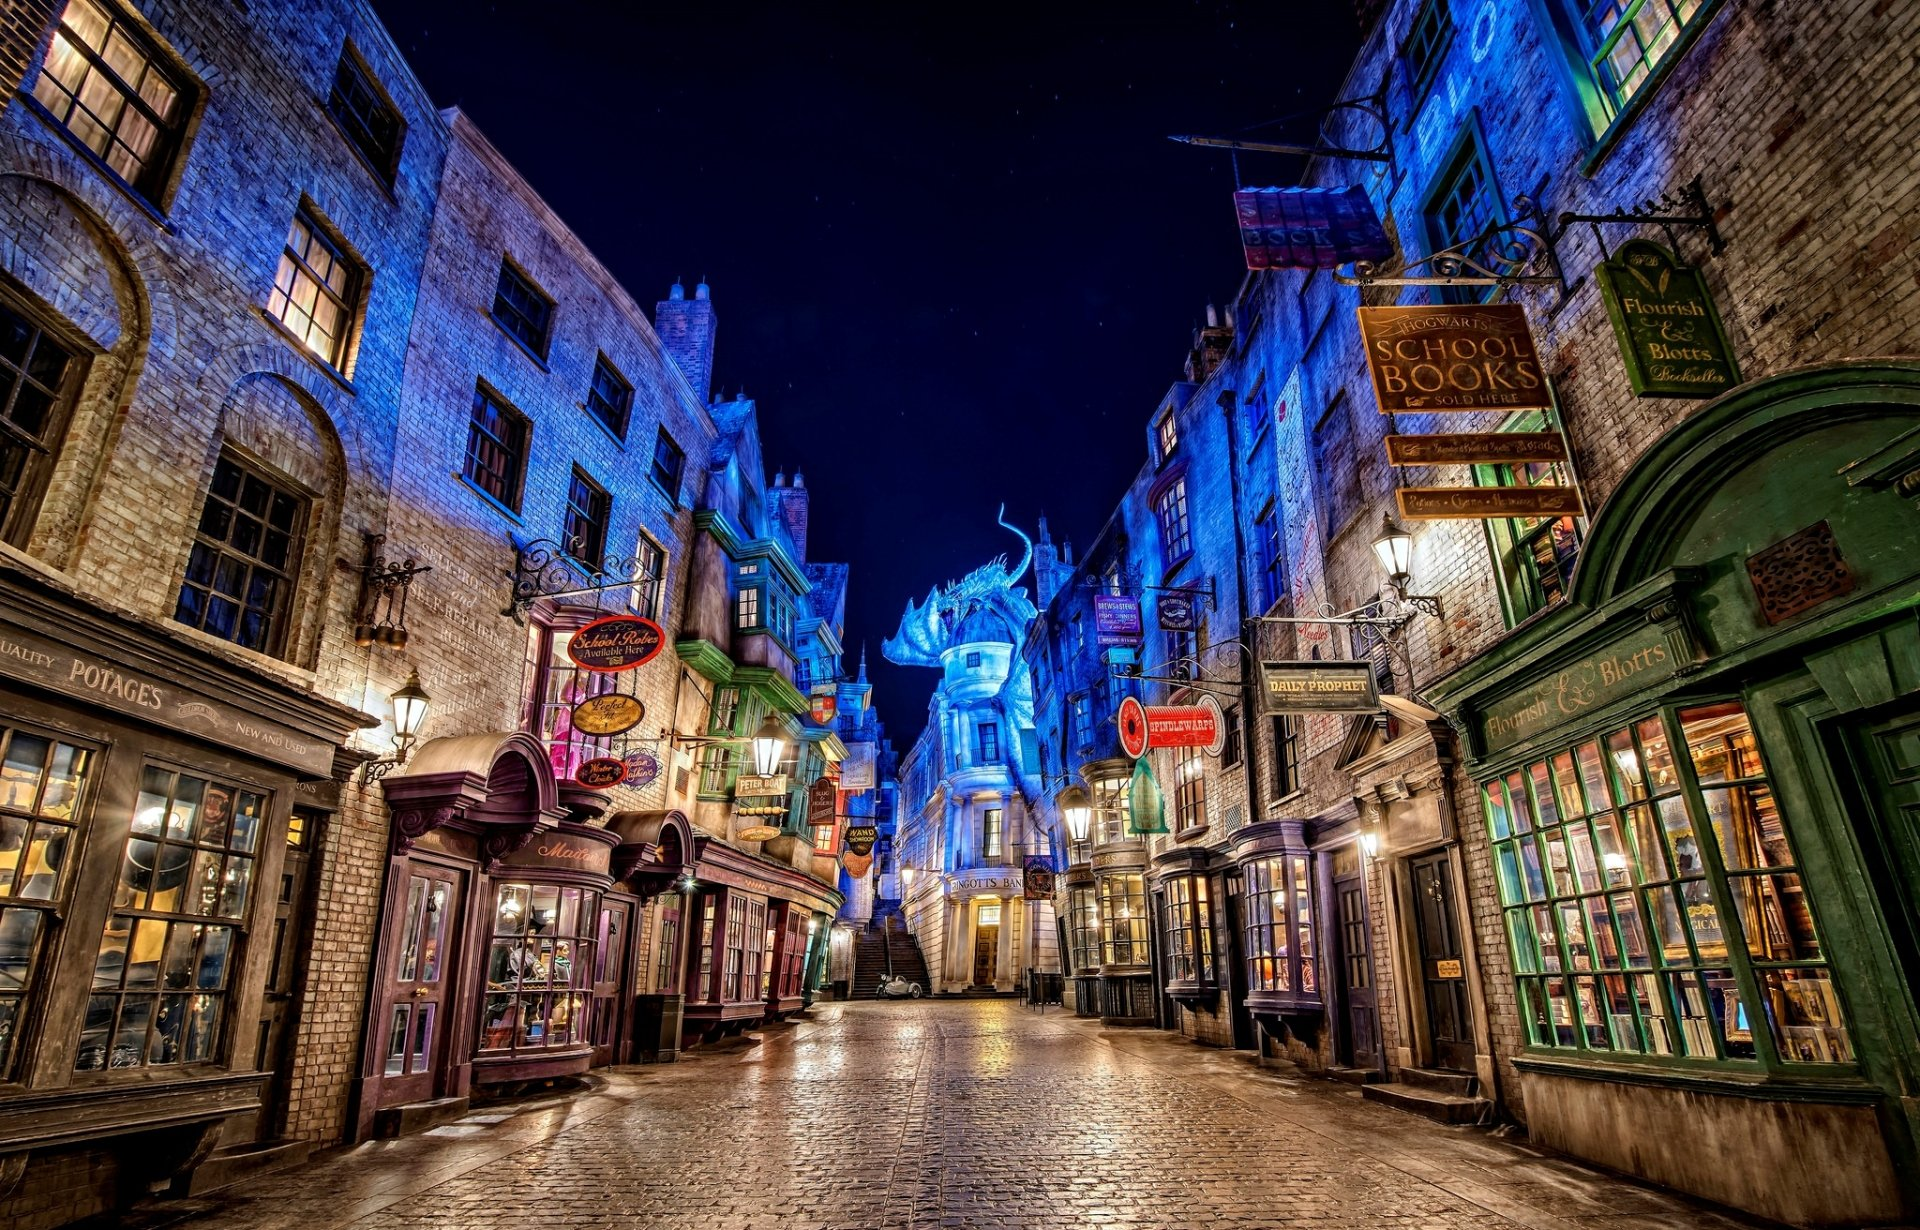 Diagon Alley From Harry Potter At Universal Studios HD